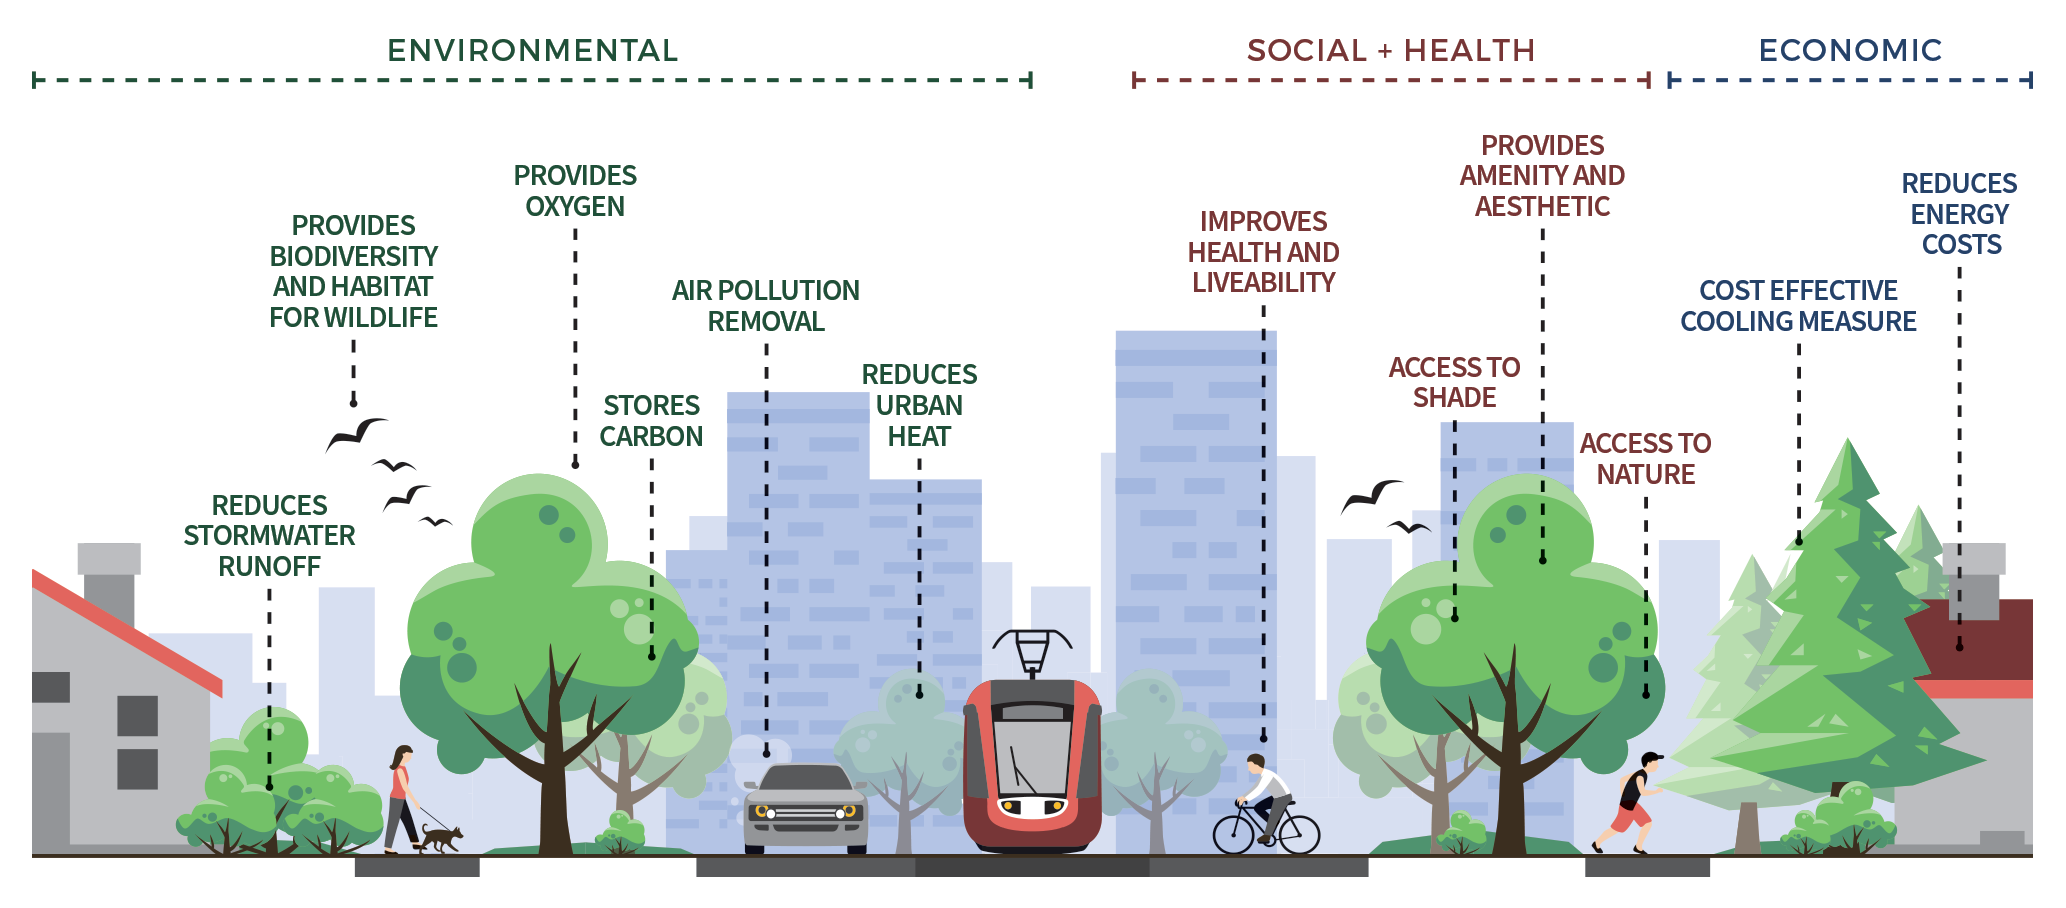 A graphic listing the benefits of living infrastructure above a cartoon image of elements of the urban environment such as buildings, people, trees and transport. Doted lines connect each benefit to a relevant image.  The environmental benefits listed are reduce stormwater runoff, provides biodiversity and habitat for wildlife, provides oxygen, stores carbon, air pollution removal, and reduces urban heat.  The social and health benefits listed are improves health and liveability, access to shade, provides amenity and aesthetic, and access to nature.  The economic benefits listed are cost effective cooling measures, and reduce energy costs.